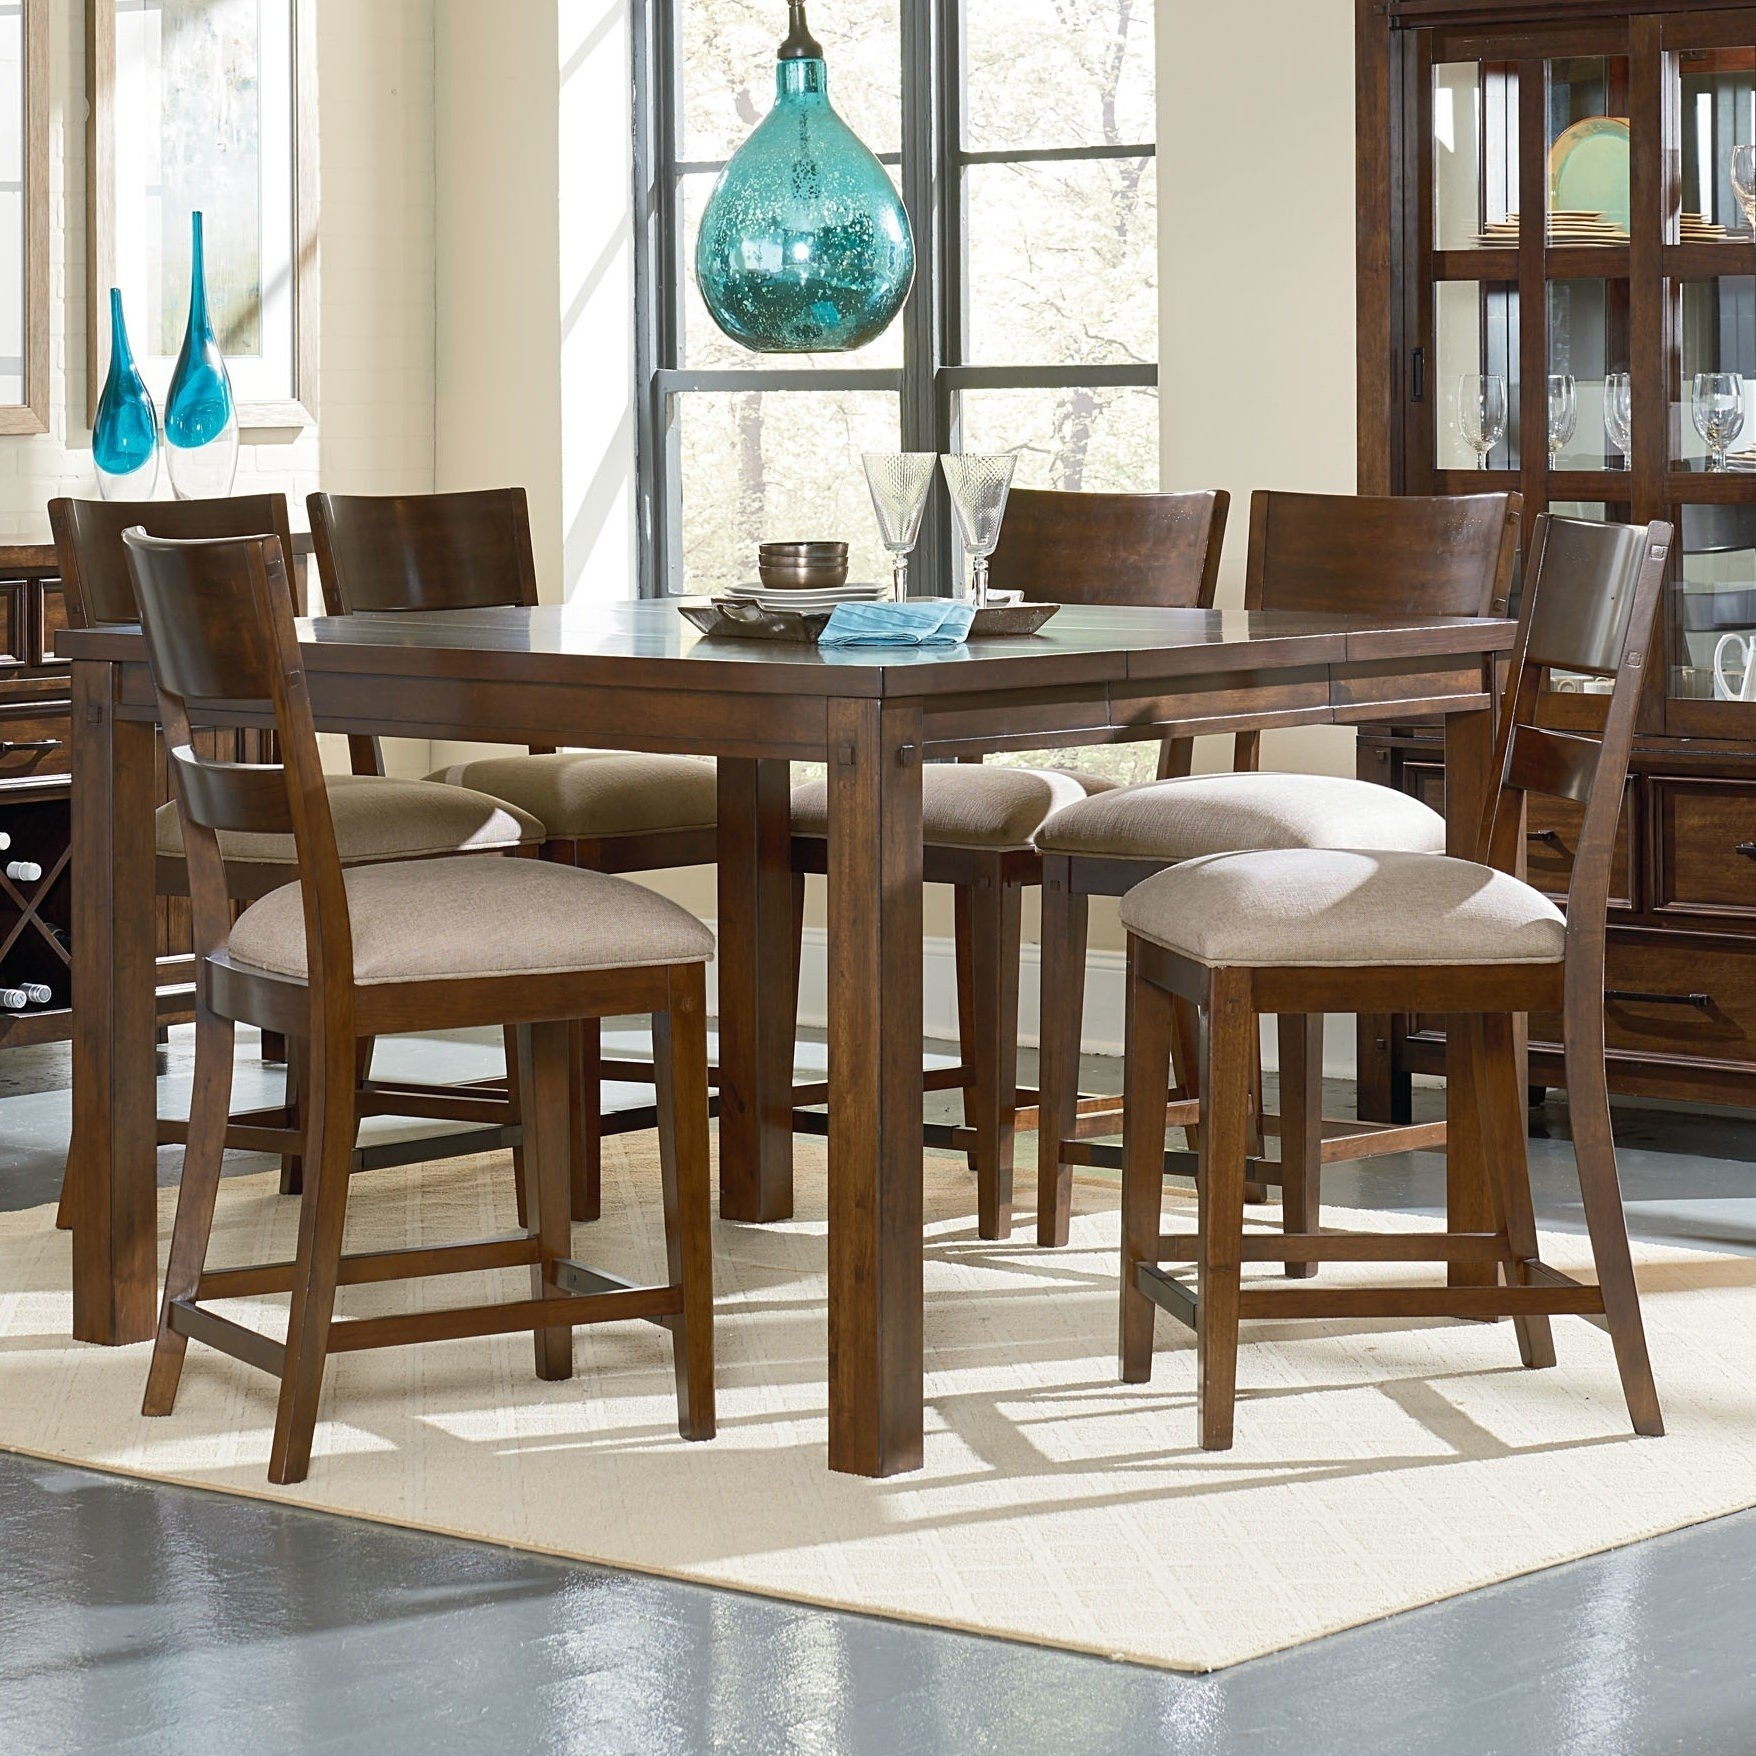 Square Dining Table For 6 – Visual Hunt Inside Most Recent Parquet 6 Piece Dining Sets (Image 20 of 20)